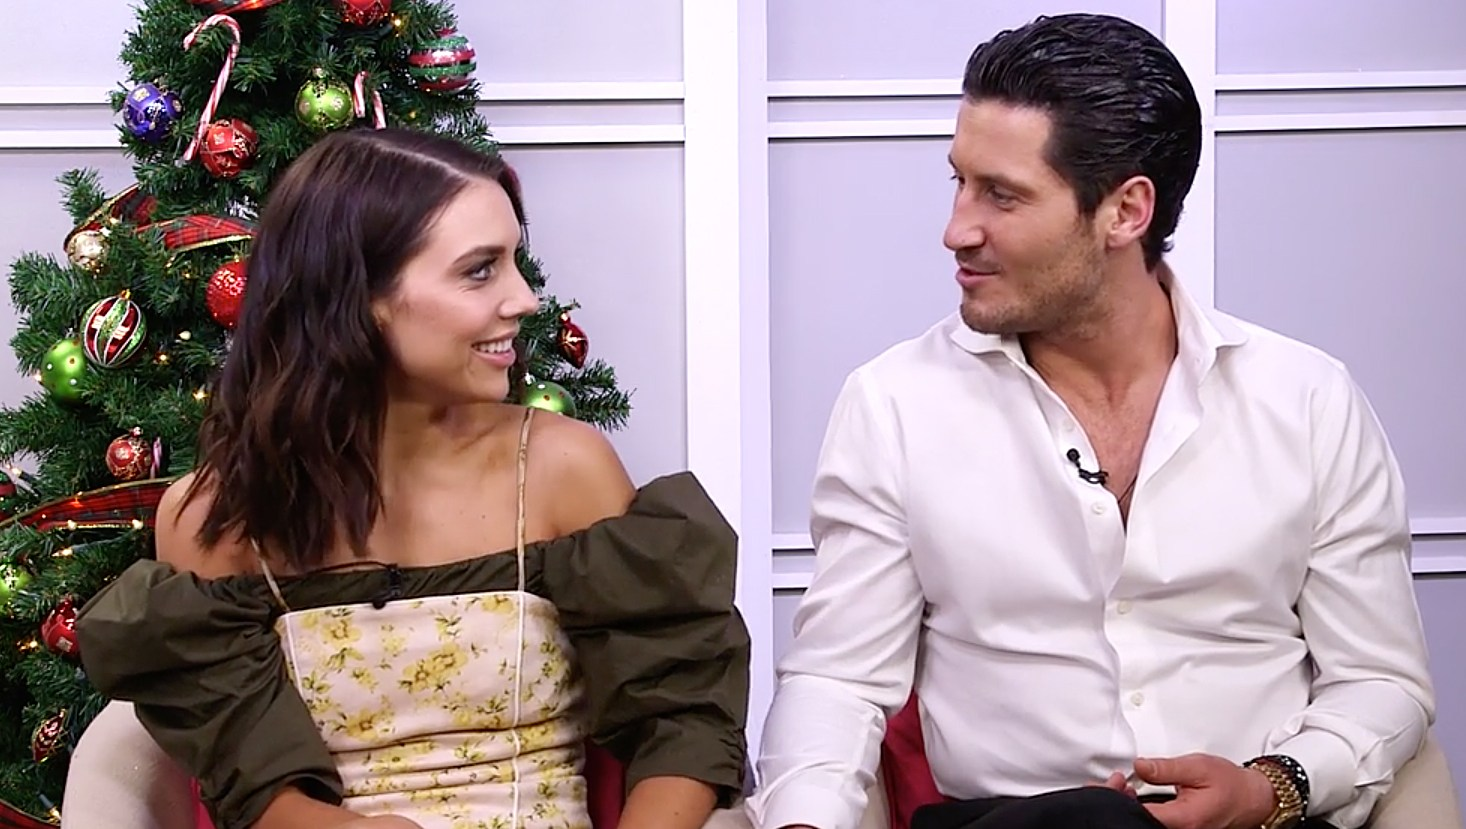 Val Chmerkovskiy and Jenna Johnson Give New 'DWTS' Couple Alan Bersten and Alexis Ren Advice